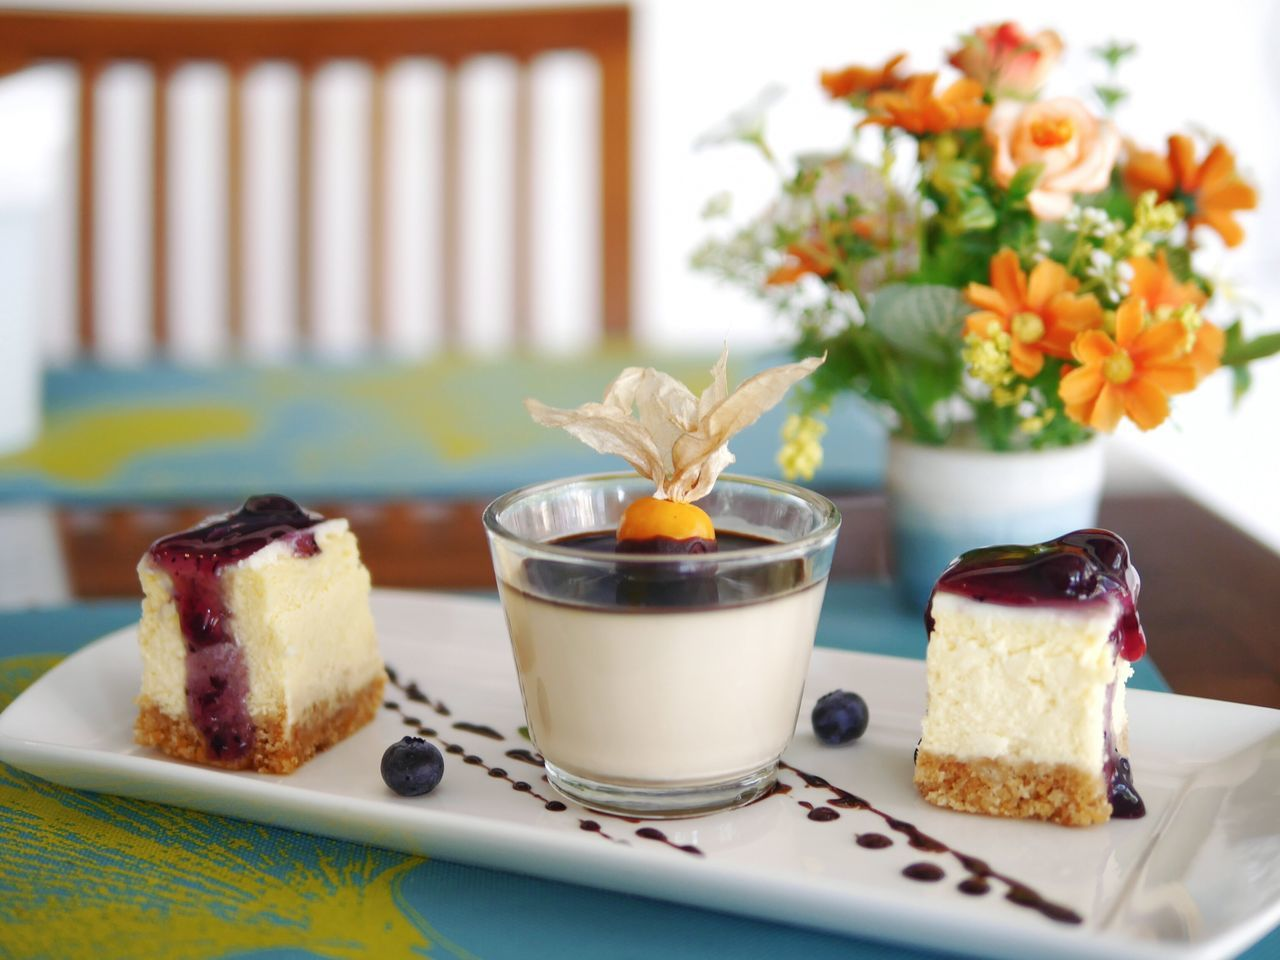 Food And Drink Sweet Food Indoors  Tea - Hot Drink No People Close-up Water Freshness Day Sweet Dessert Sweet Pie Dessertoftheday Dessert Time! Delicious Toasted Bread Cake Cookie Freshness Indoors  Ready-to-eat Dessert